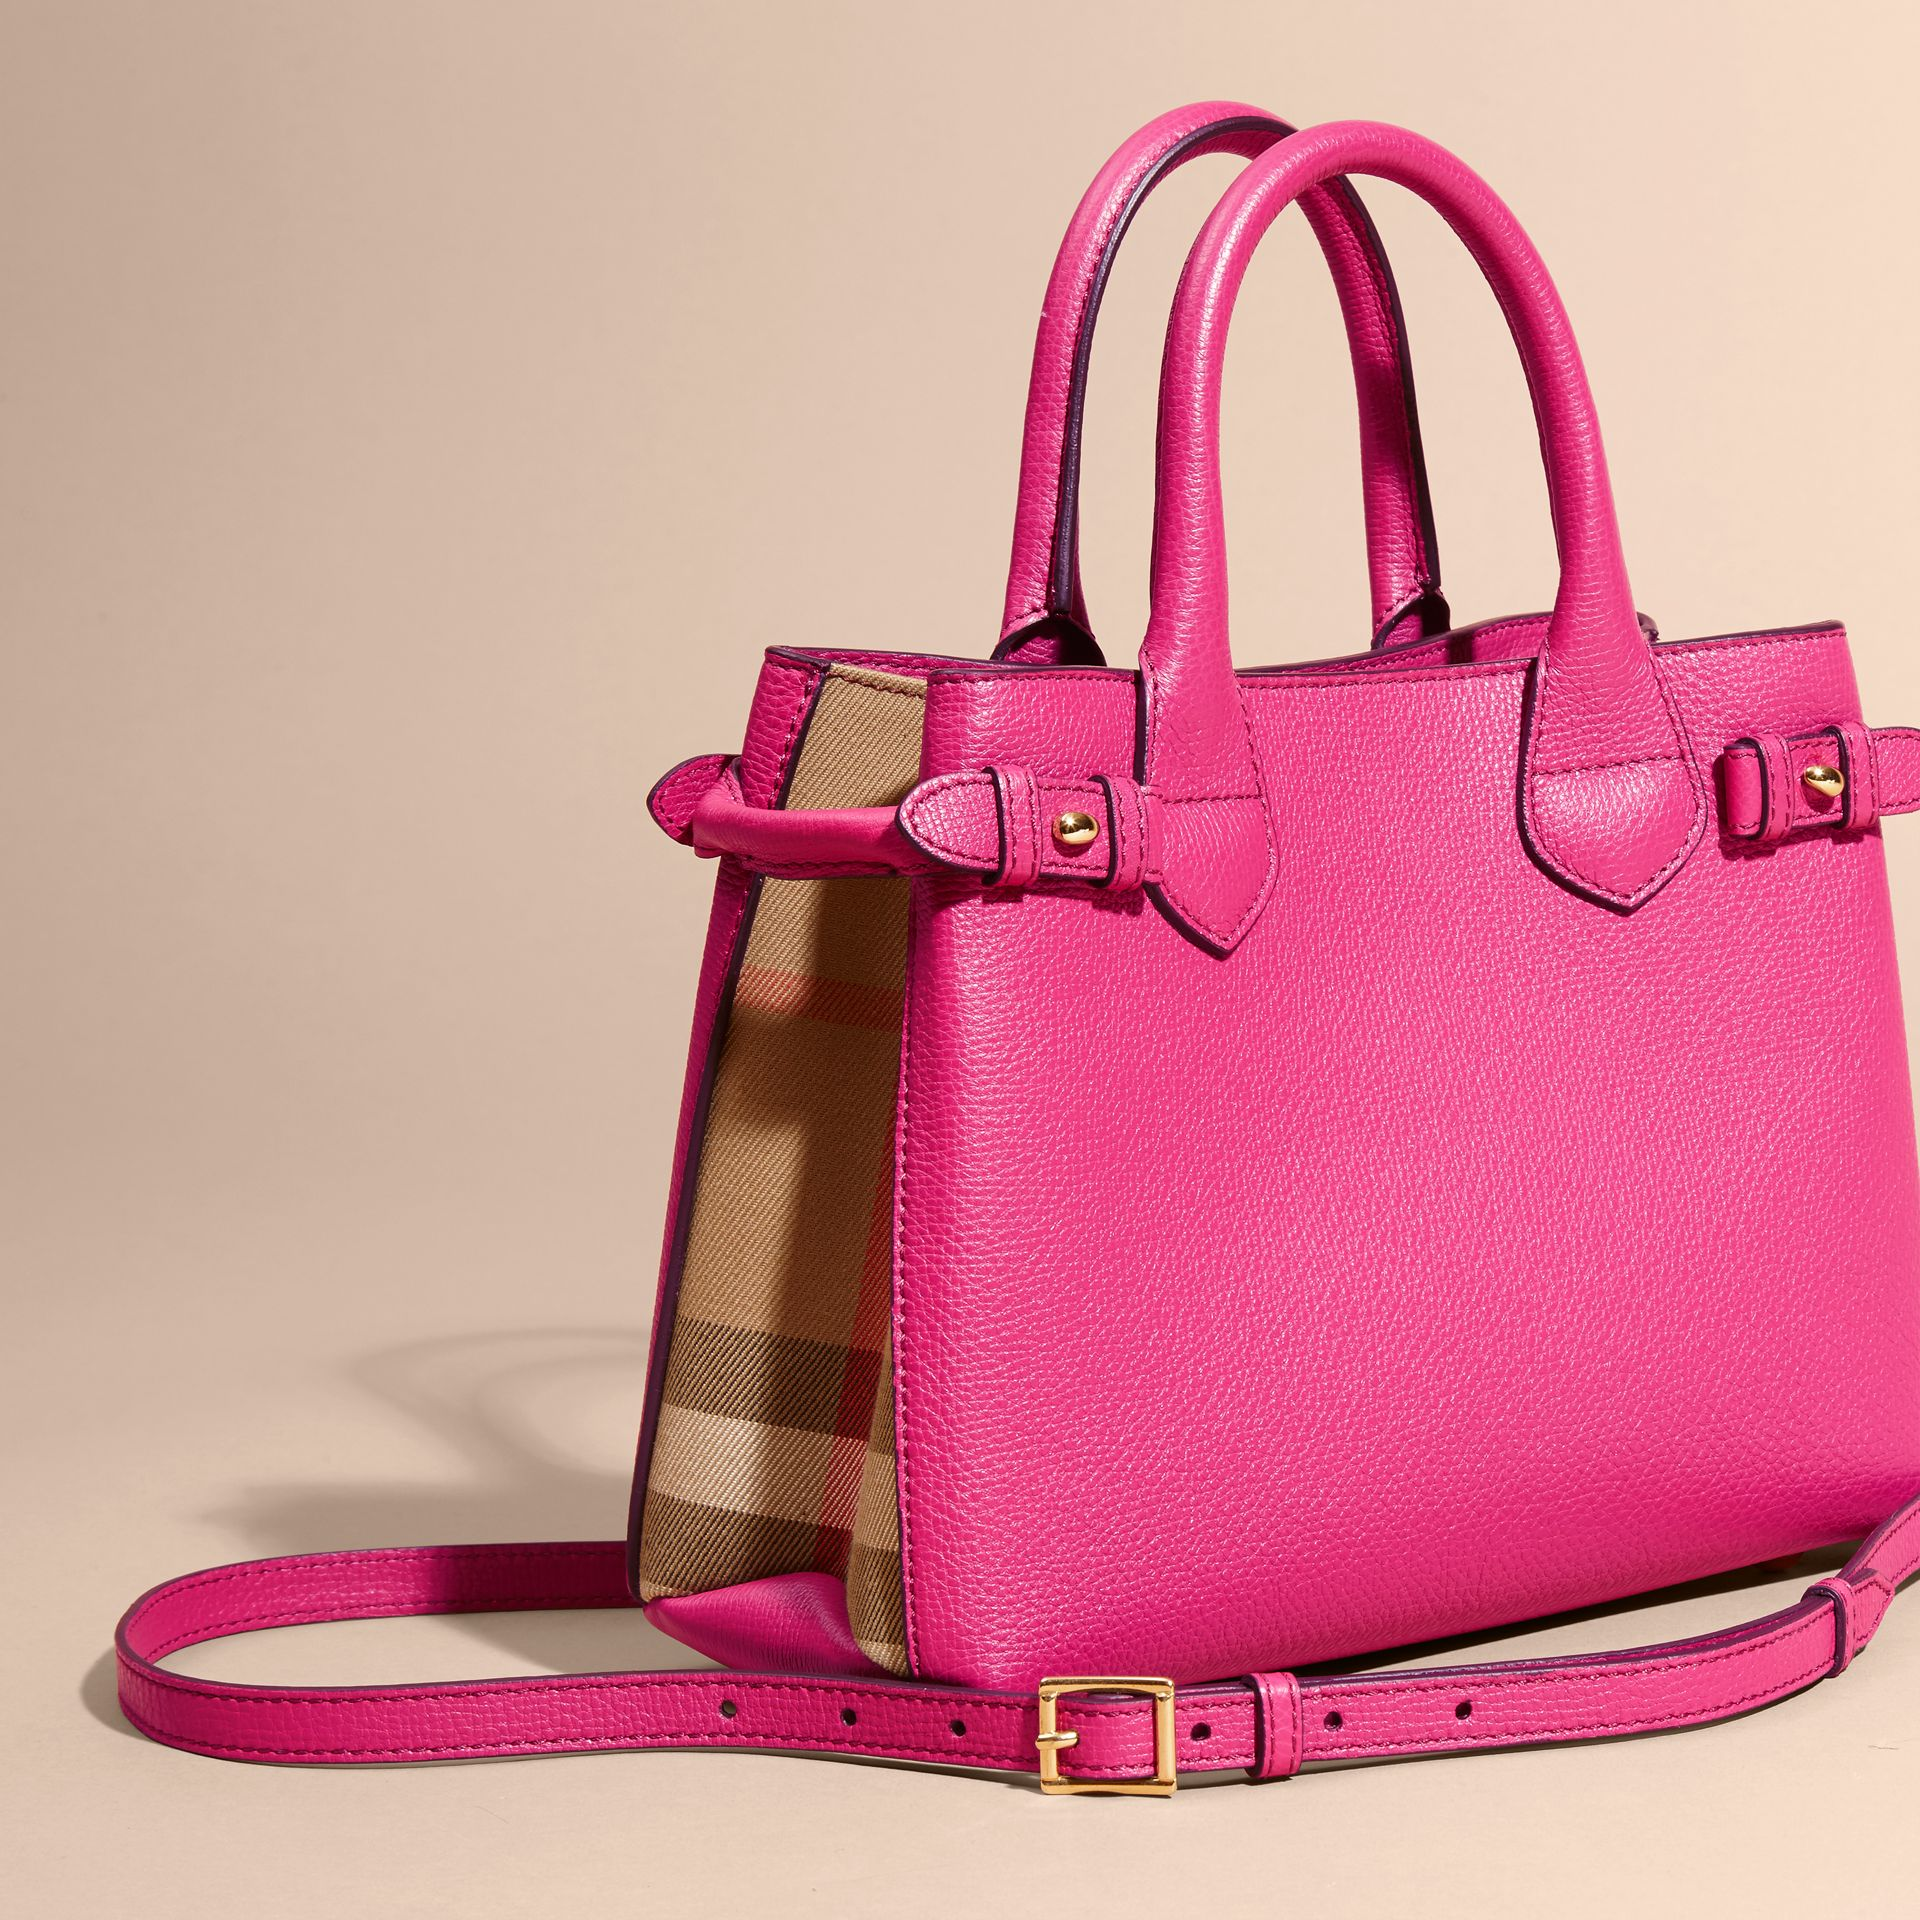 Fuchsia vif Petit sac The Banner en cuir et coton House check Fuchsia Vif - photo de la galerie 3